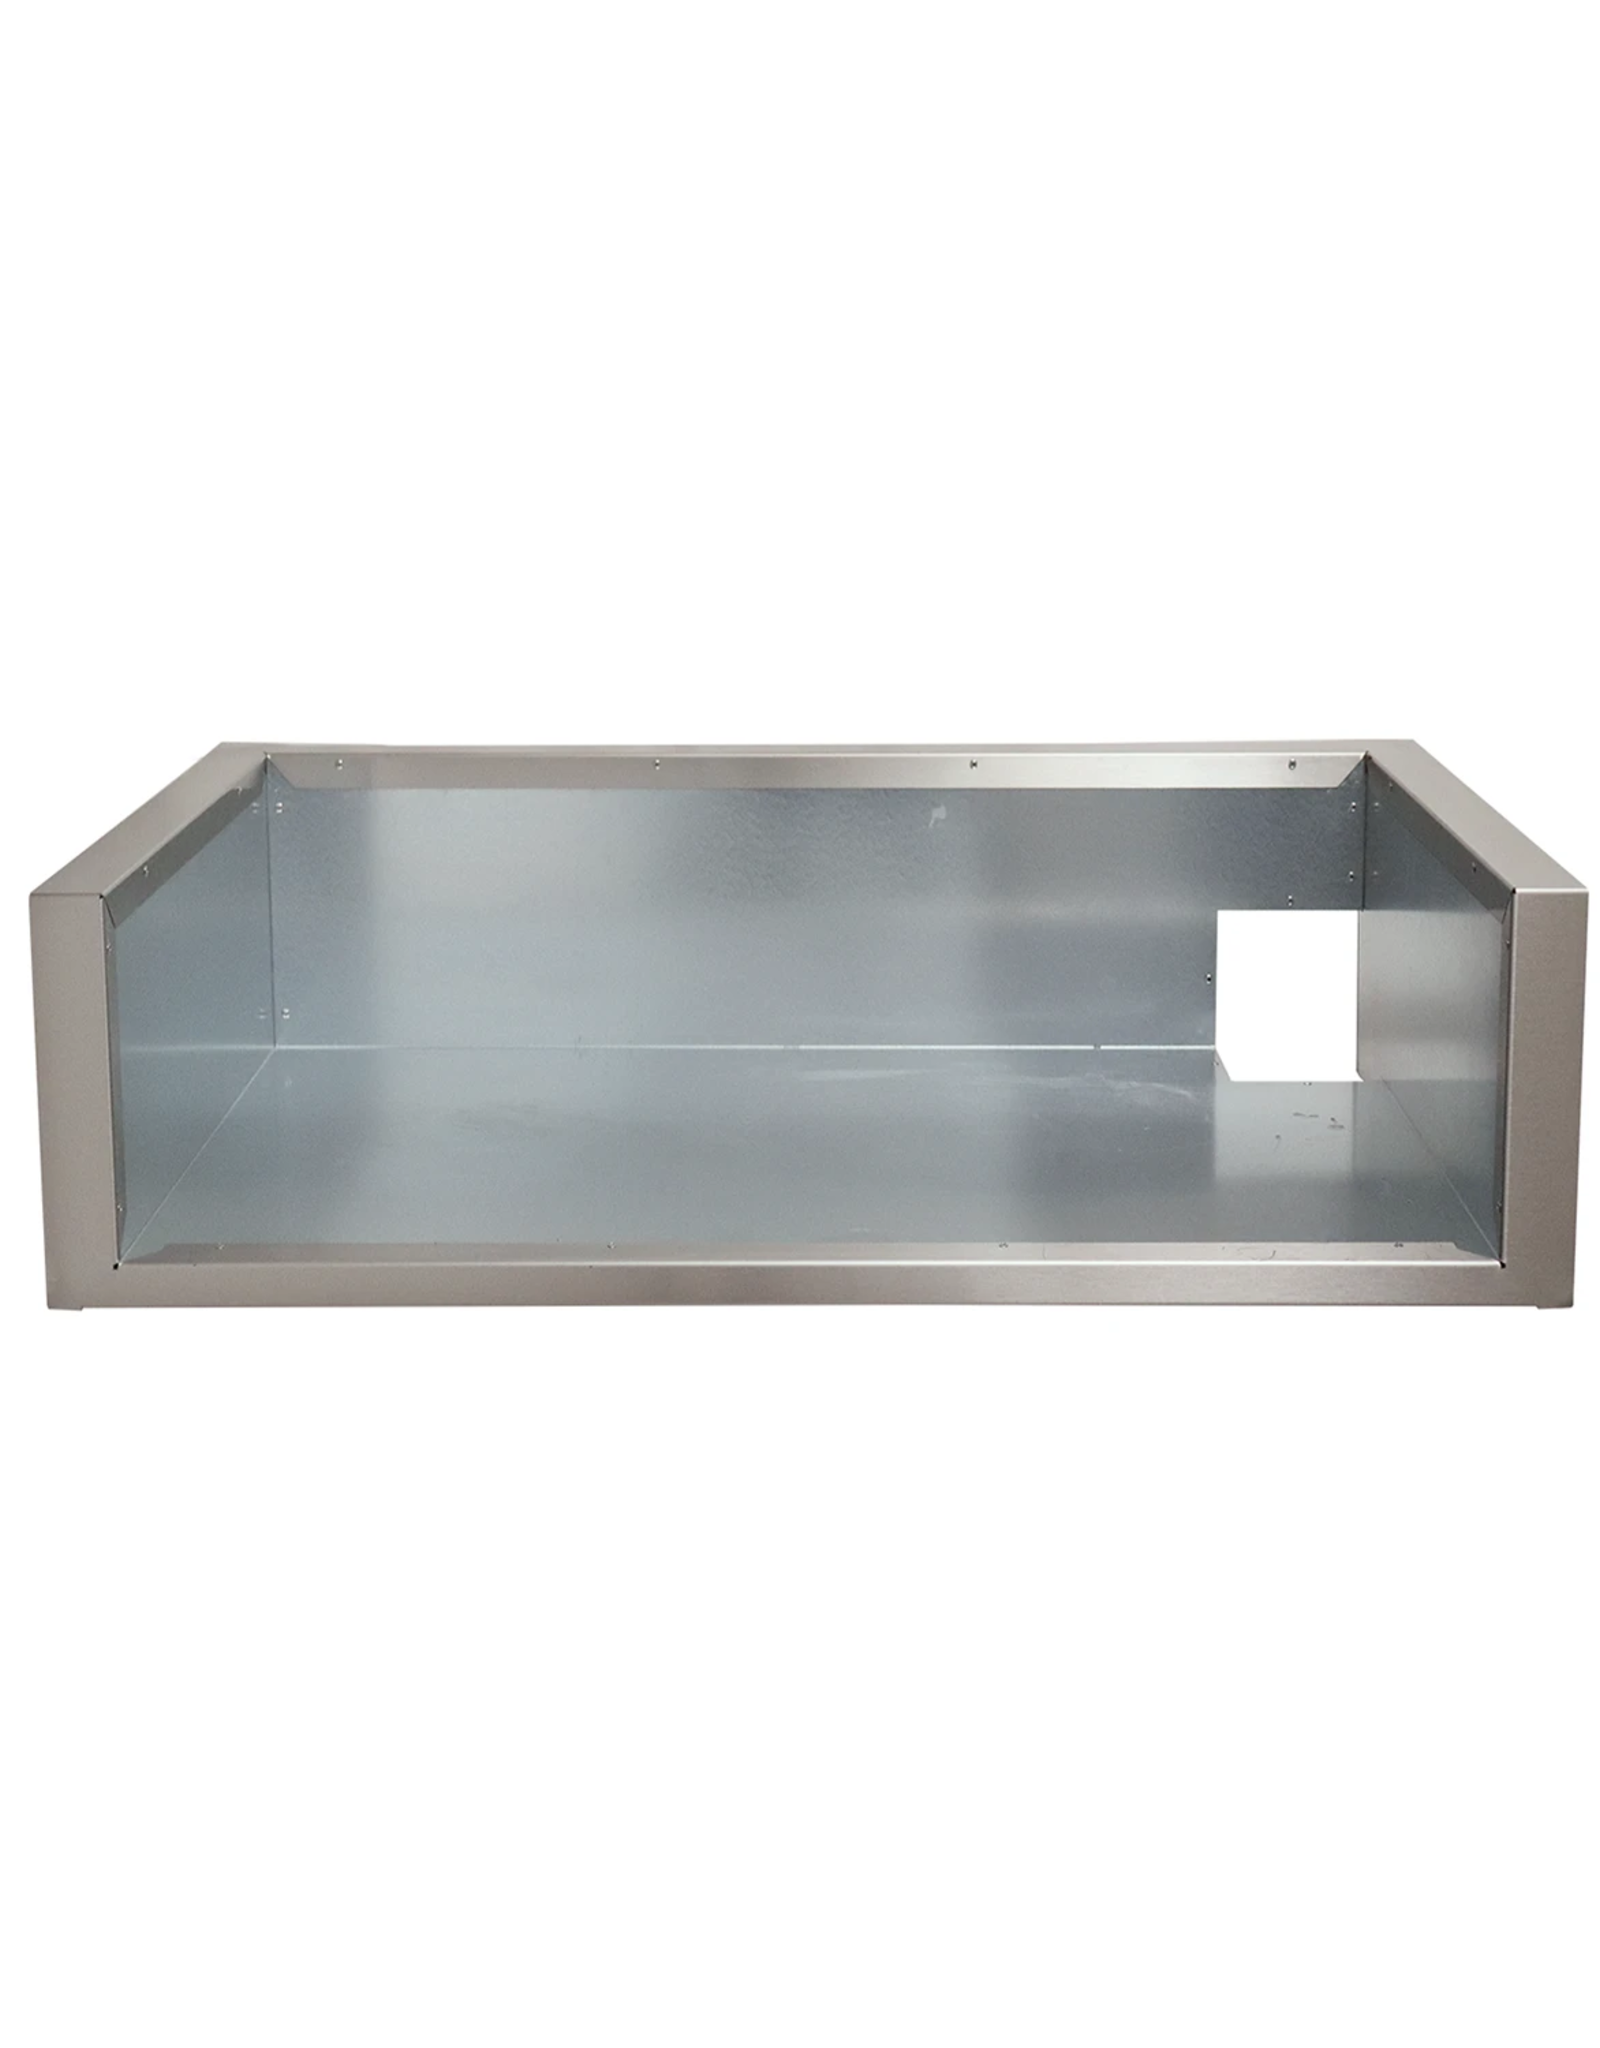 """Renaissance Cooking Systems Insulating Liner for 38"""" Cutlass Pro Built-In Grill - LJRON38"""